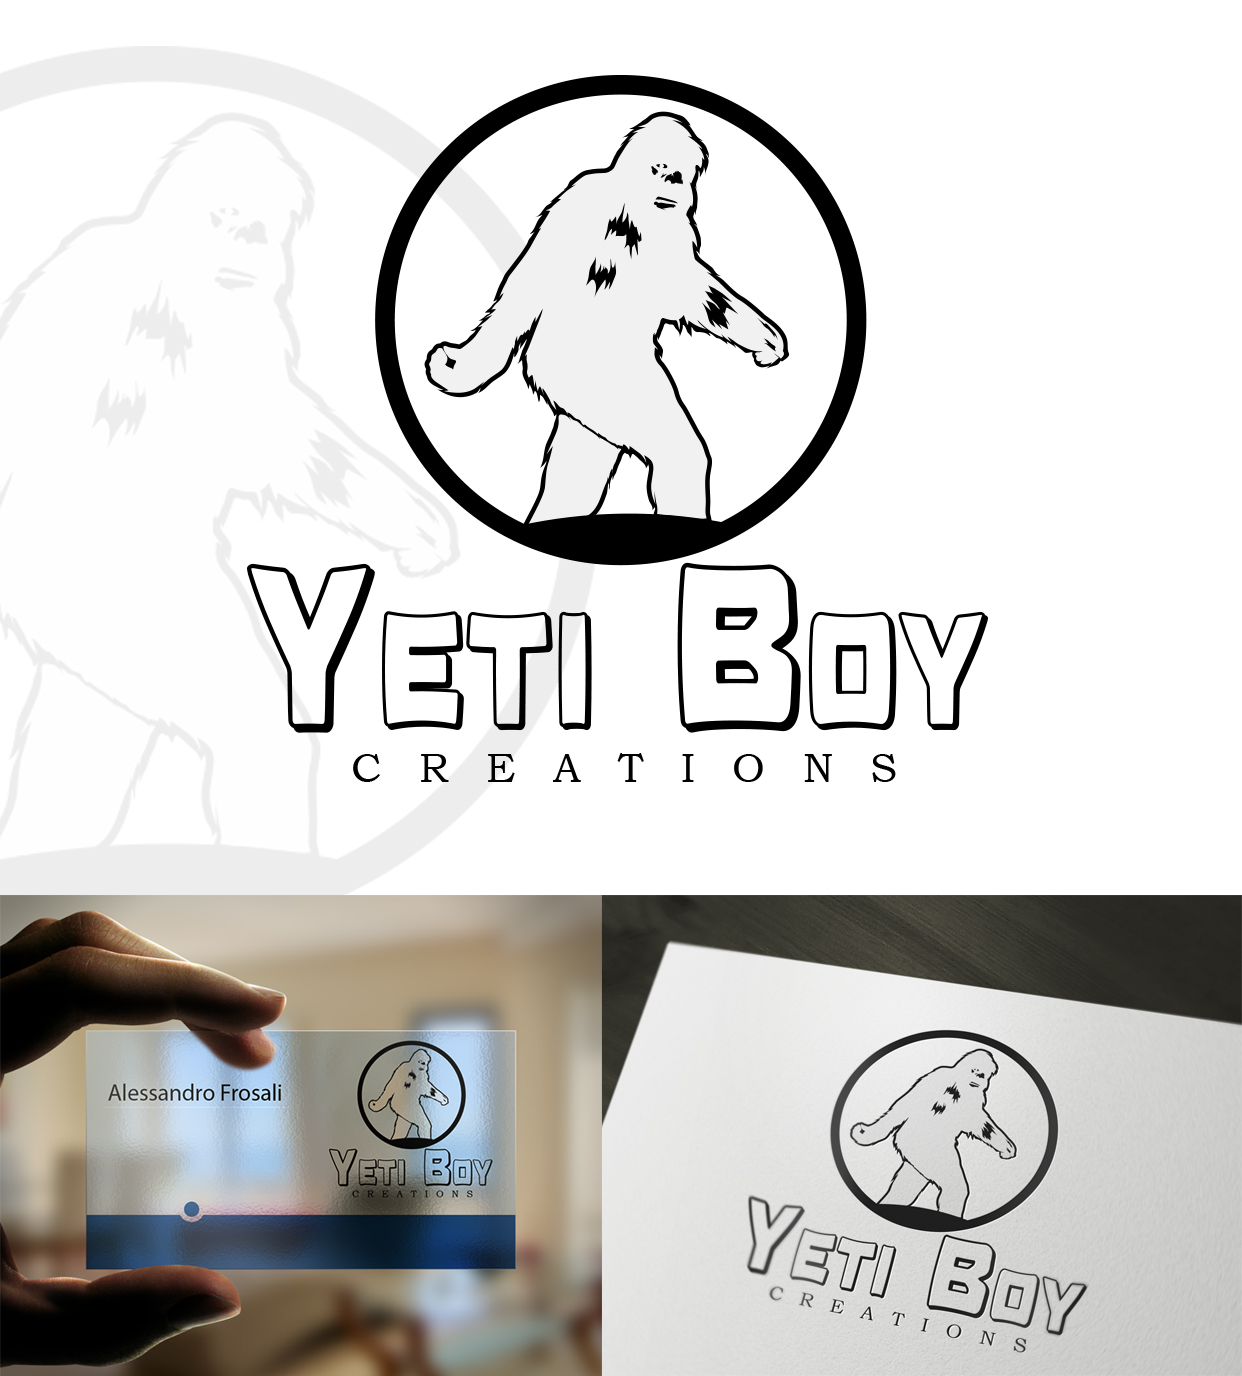 Logo Design by olii - Entry No. 45 in the Logo Design Contest Captivating Logo Design for Yeti Boy Creations.